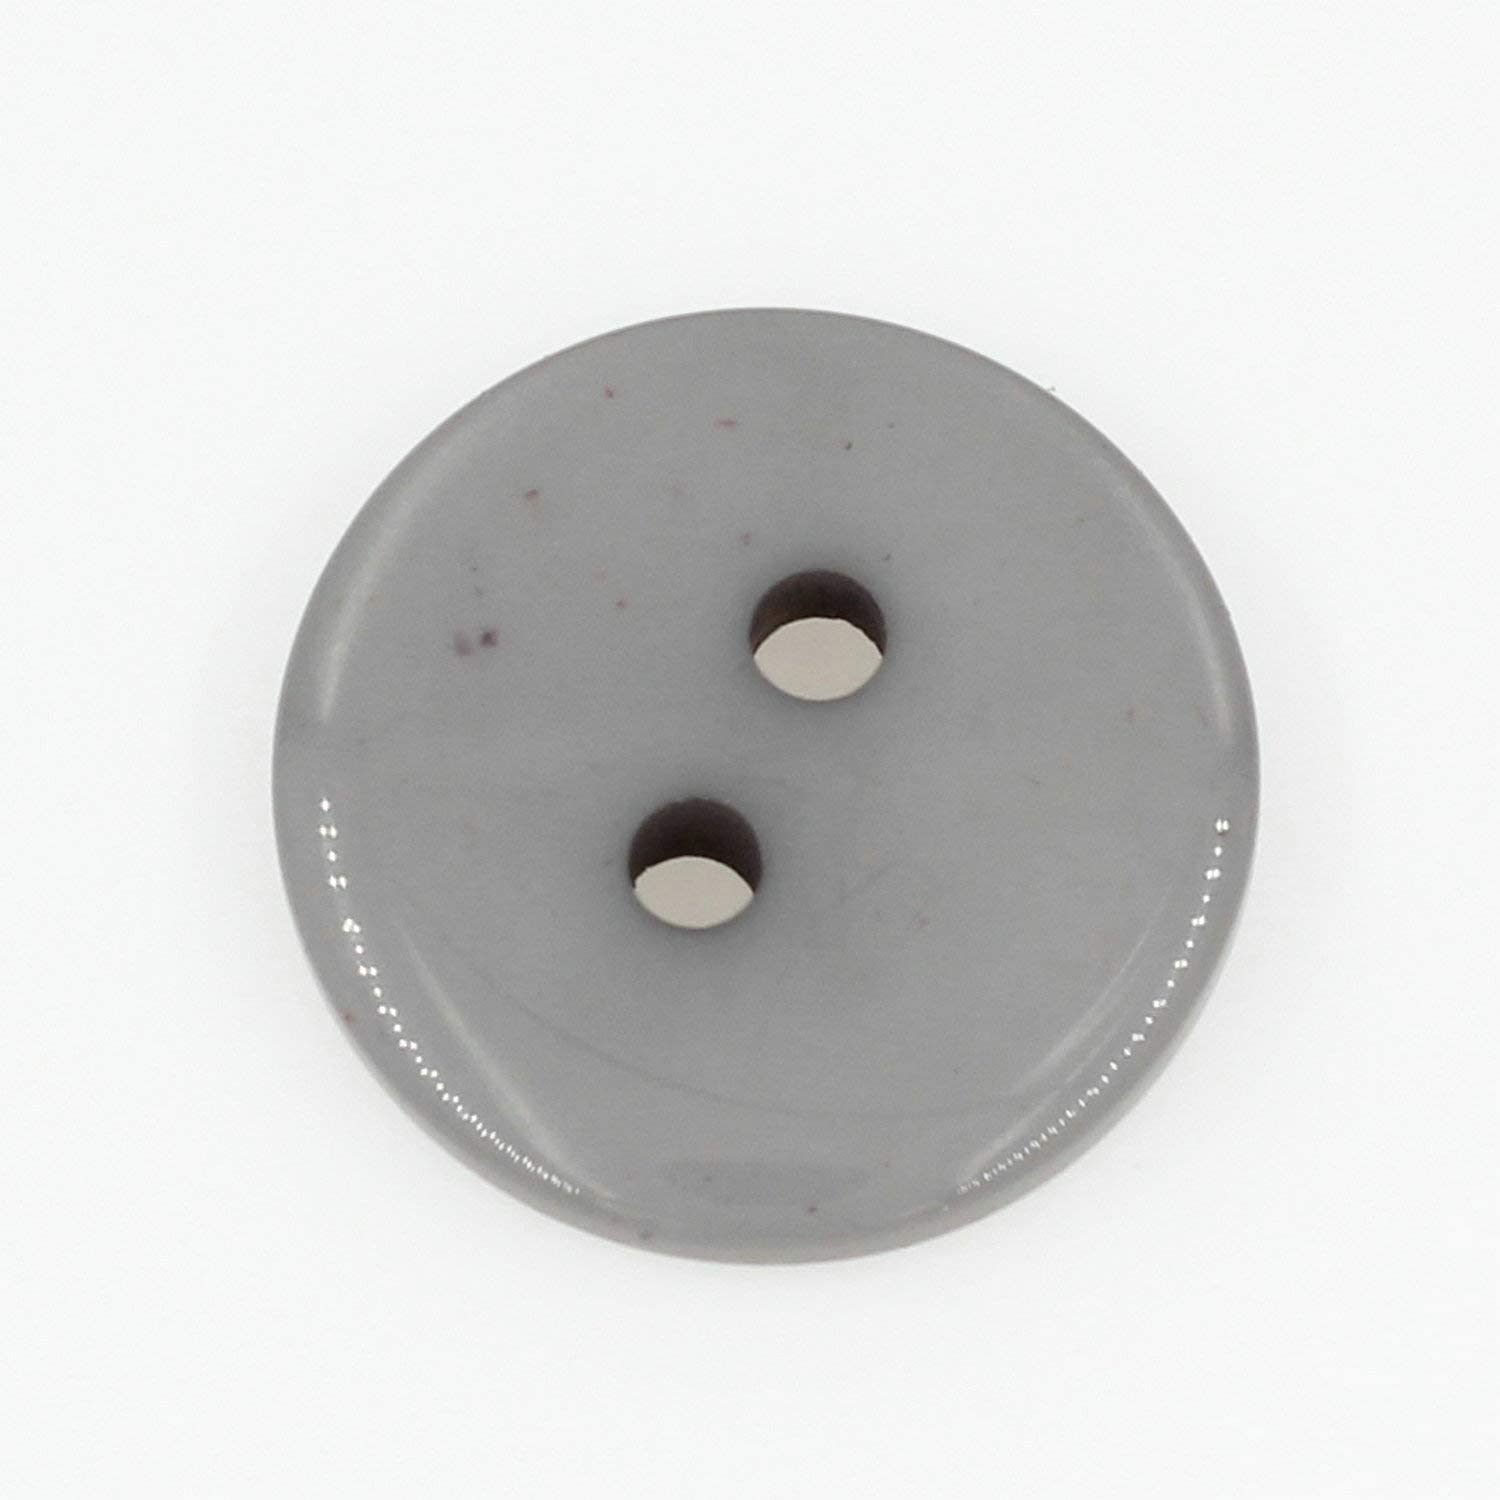 11.5mm (0.43'') Round Resin Sewing Buttons for Craft Grey Color Pack of 500 Pcs Leekayer